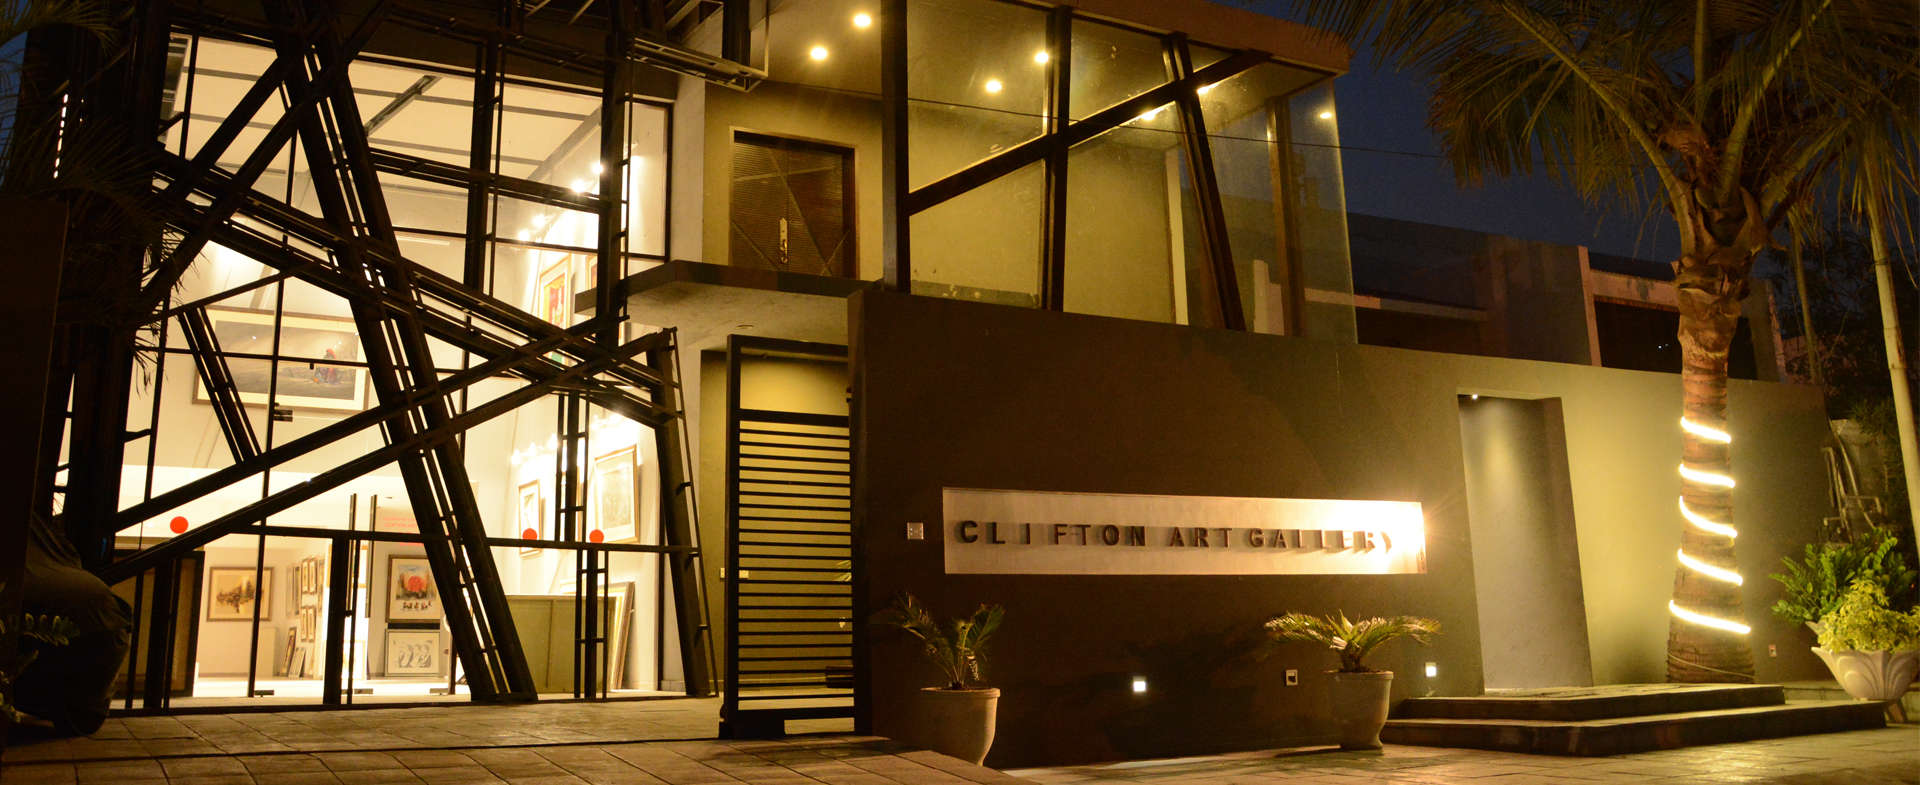 Clifton Art Gallery